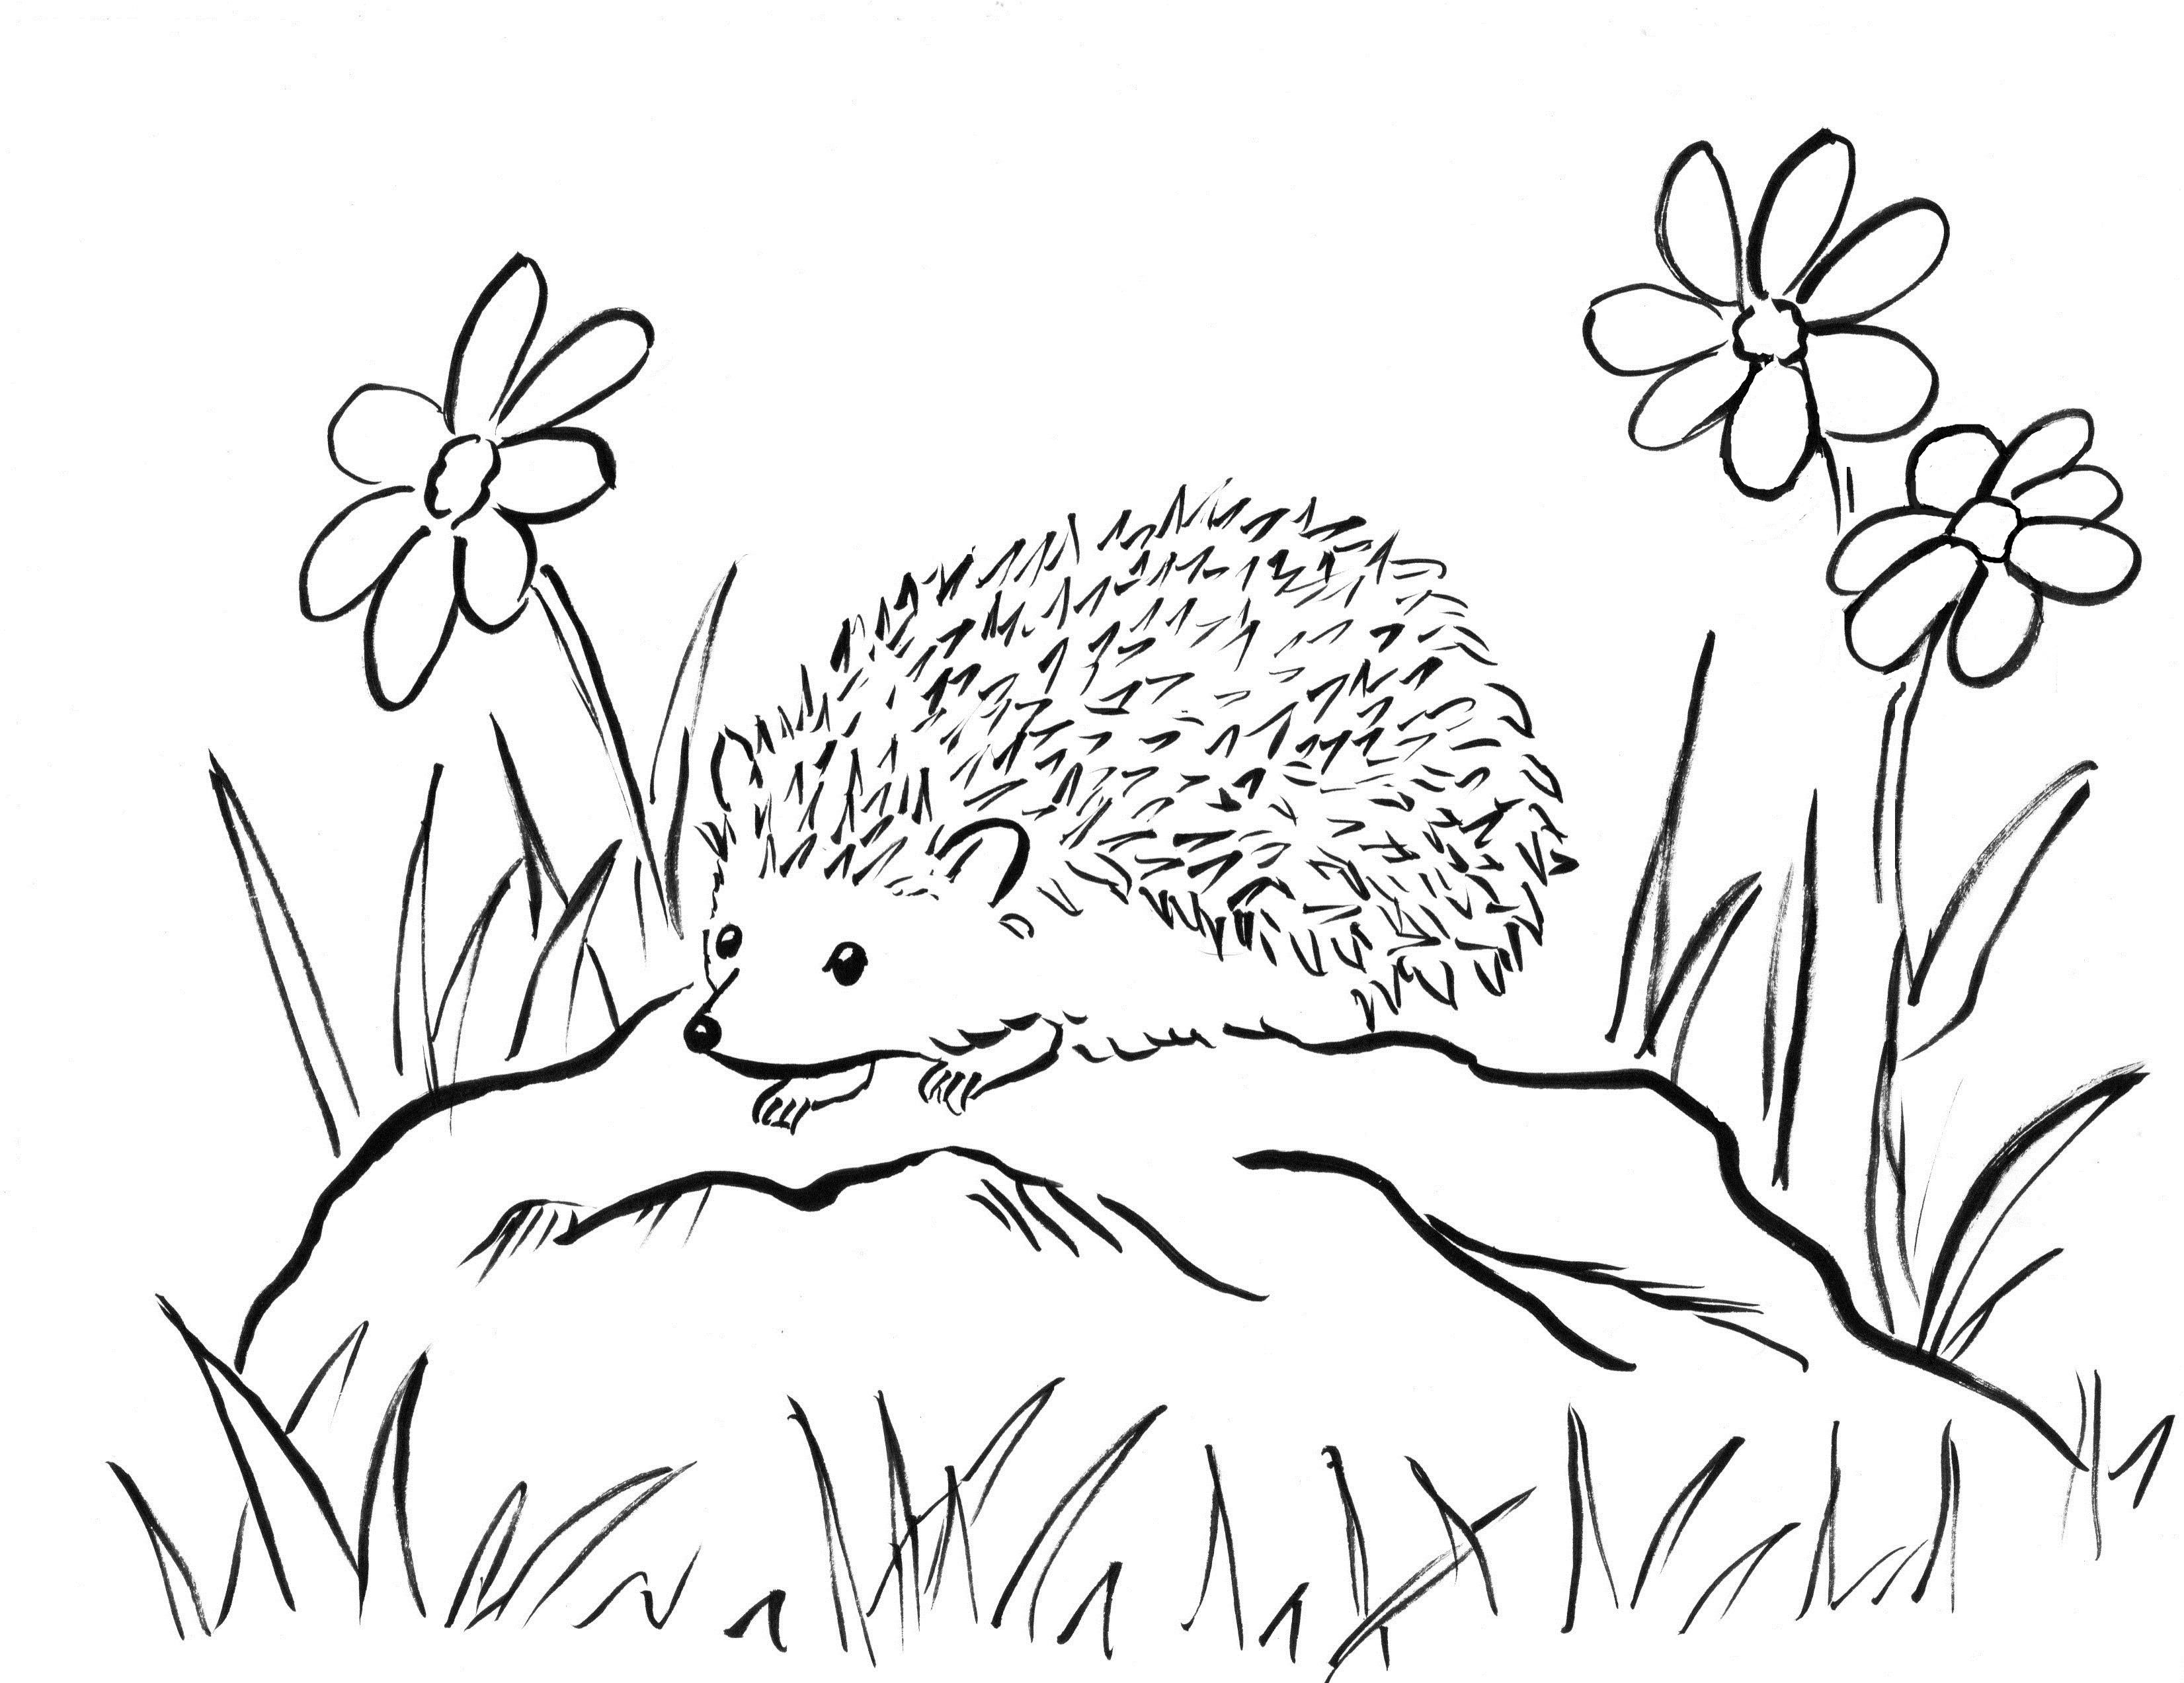 Hedgehog Coloring Sheet With Images